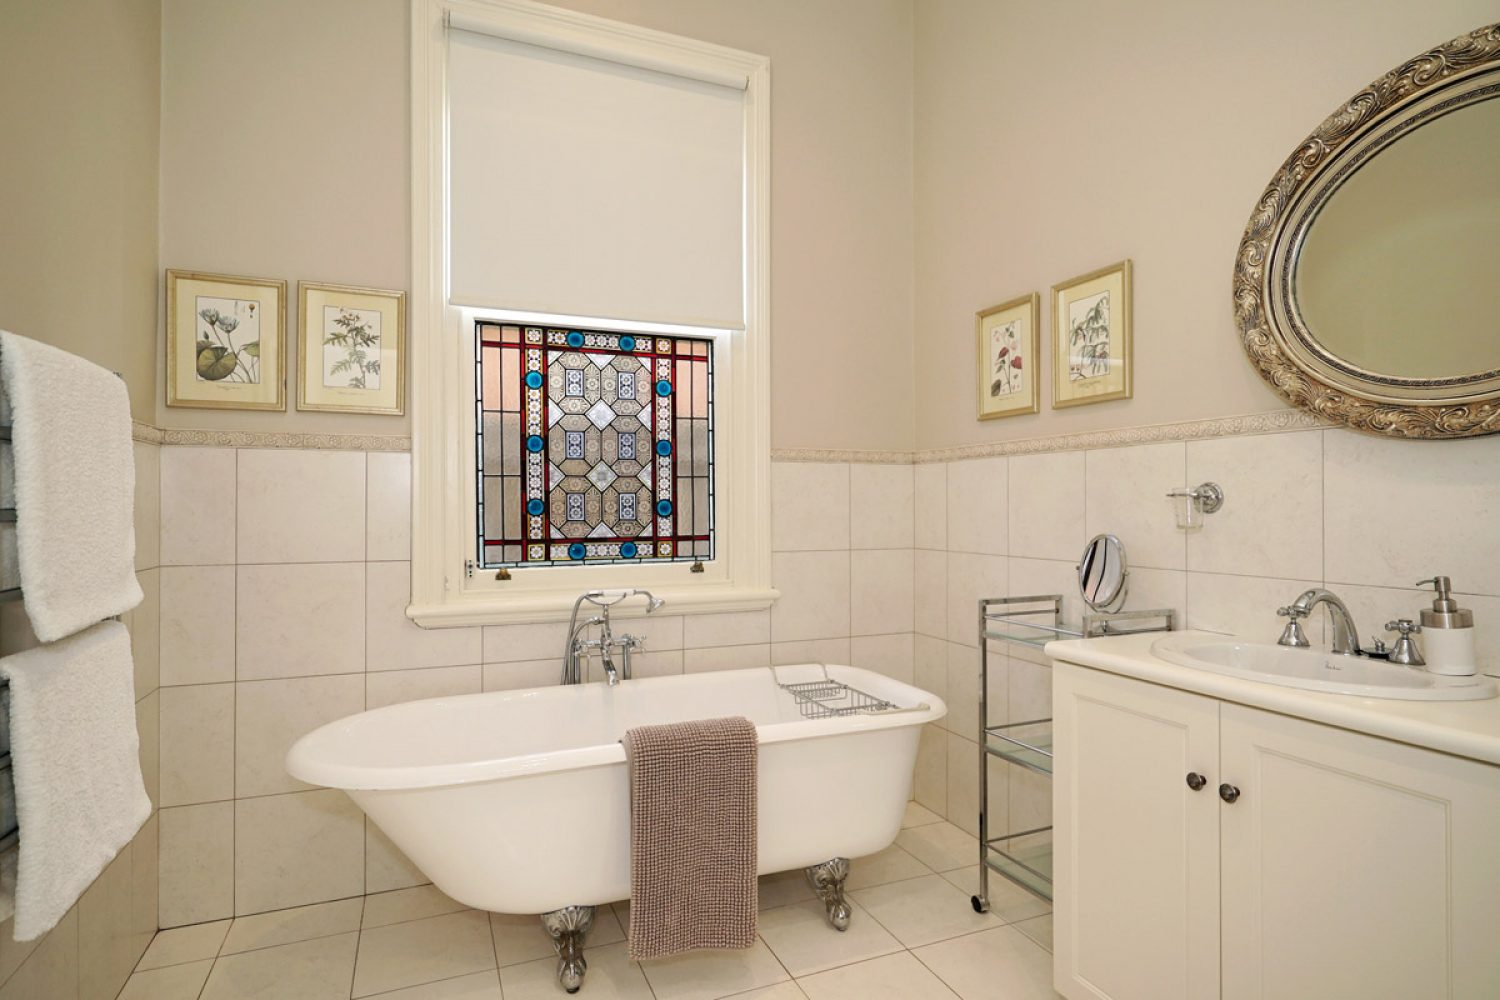 Perth: Durack House Bed and Breakfast - Bad